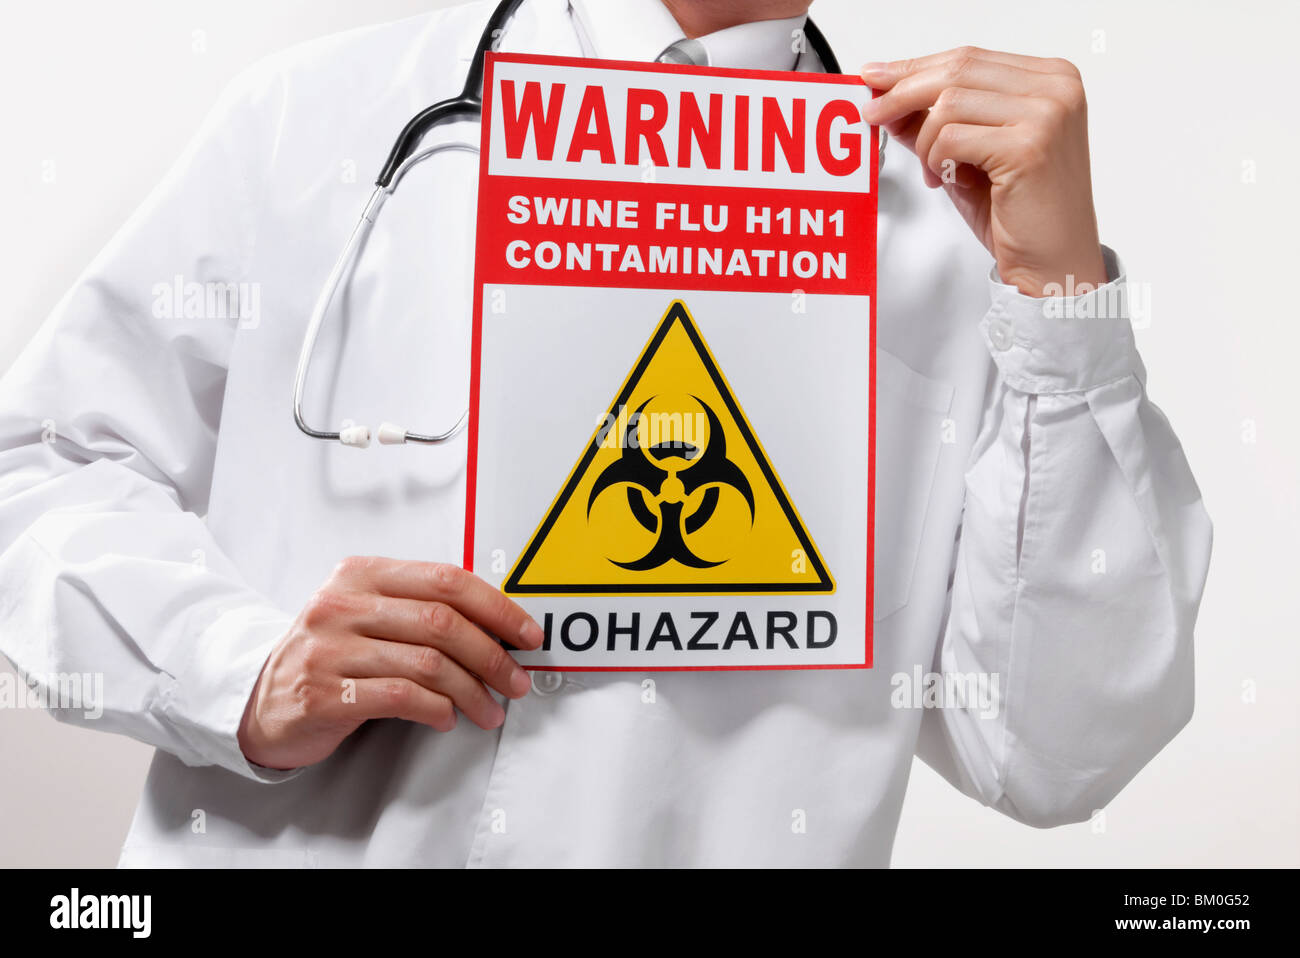 Doctor showing a Biohazard warning sign - Stock Image